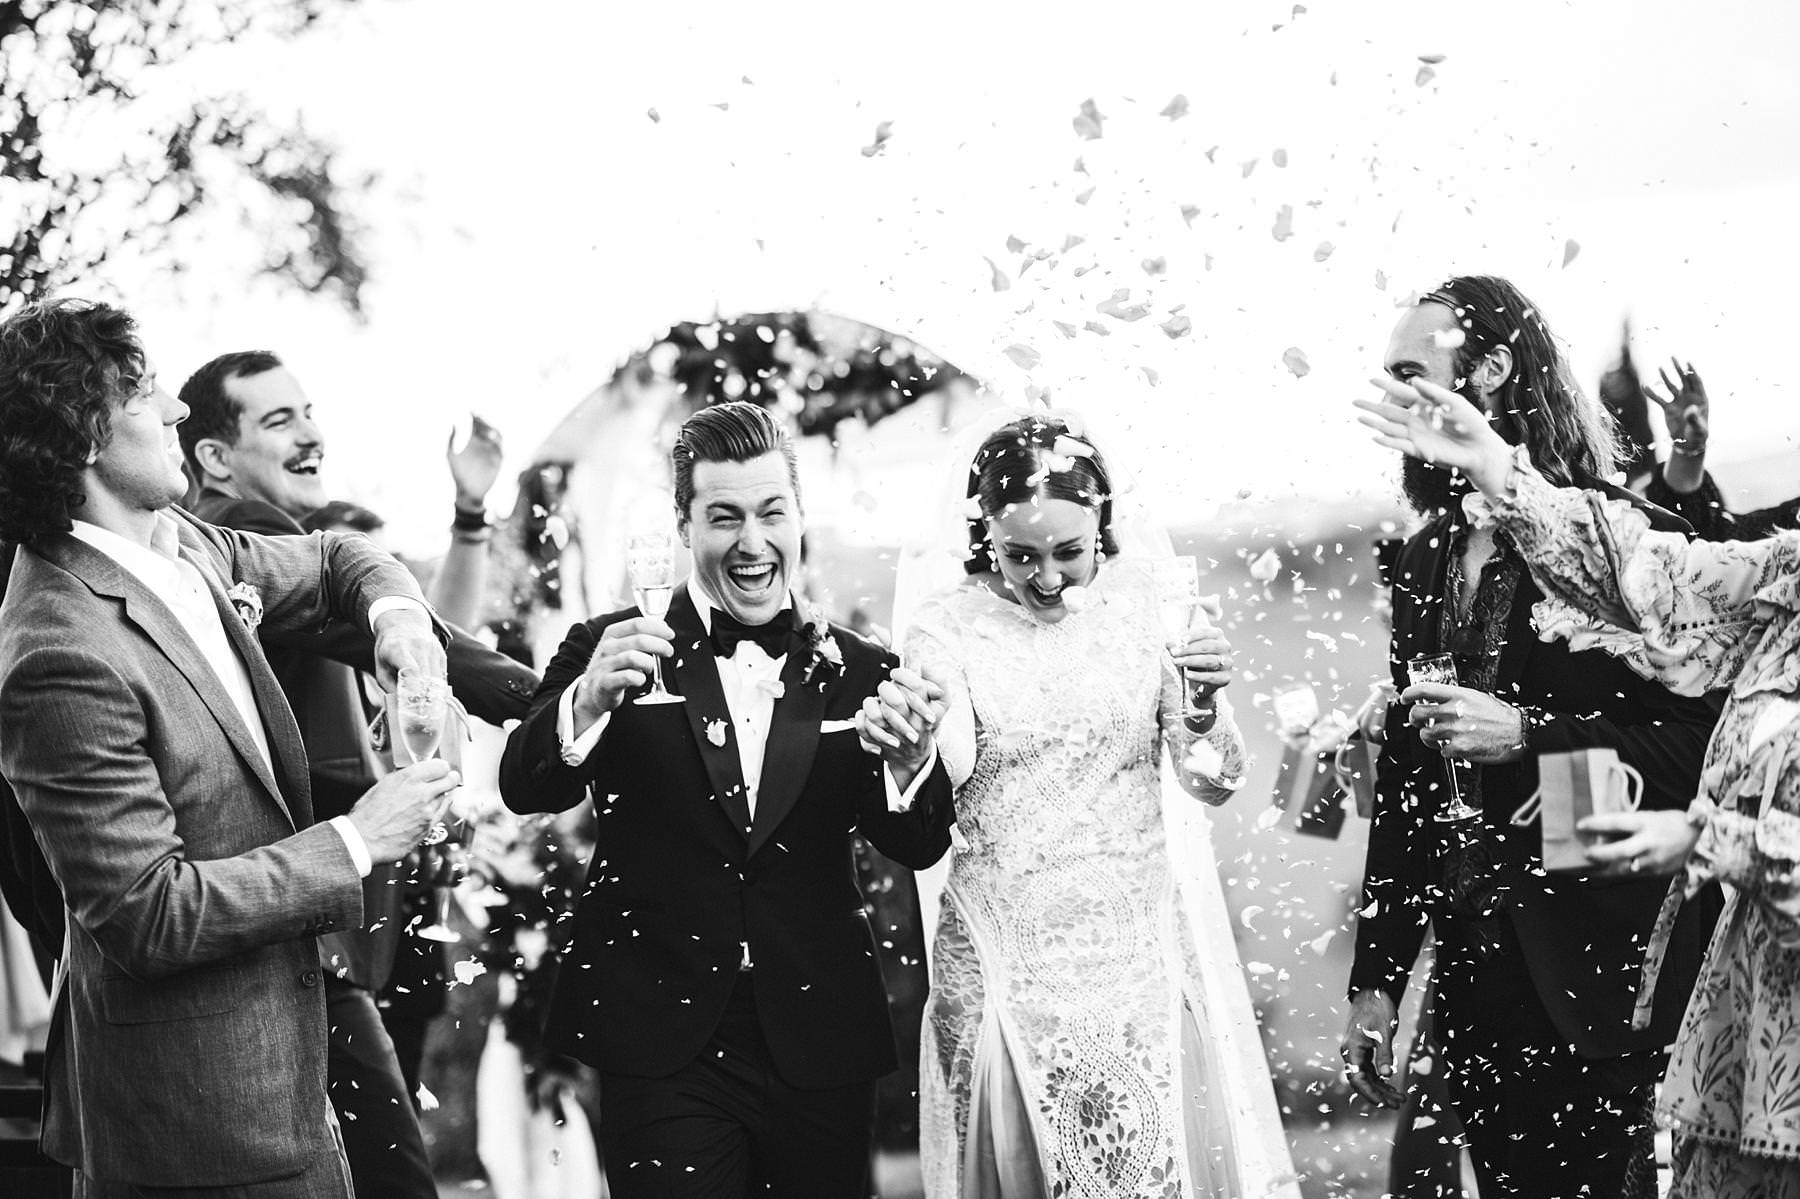 Destination wedding in Umbria at Villa l'Antica Posta, elegance and fun in a nutshell. Bride and groom are just married. Incredible intimate destination symbolic wedding